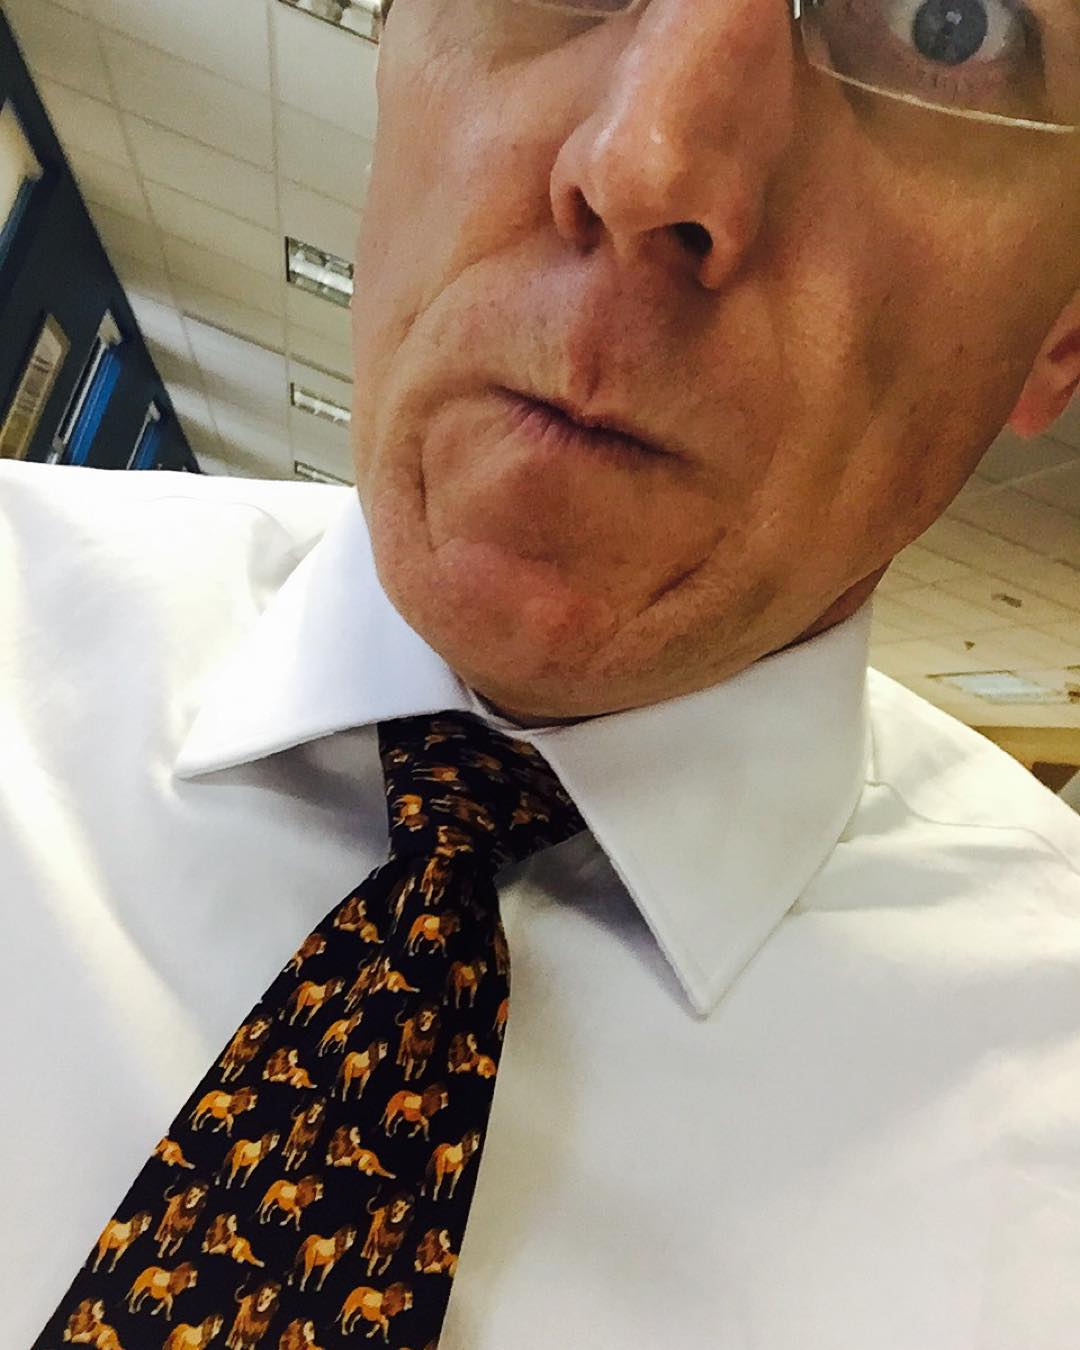 #Lions people! Lynds! #tiedayfriday